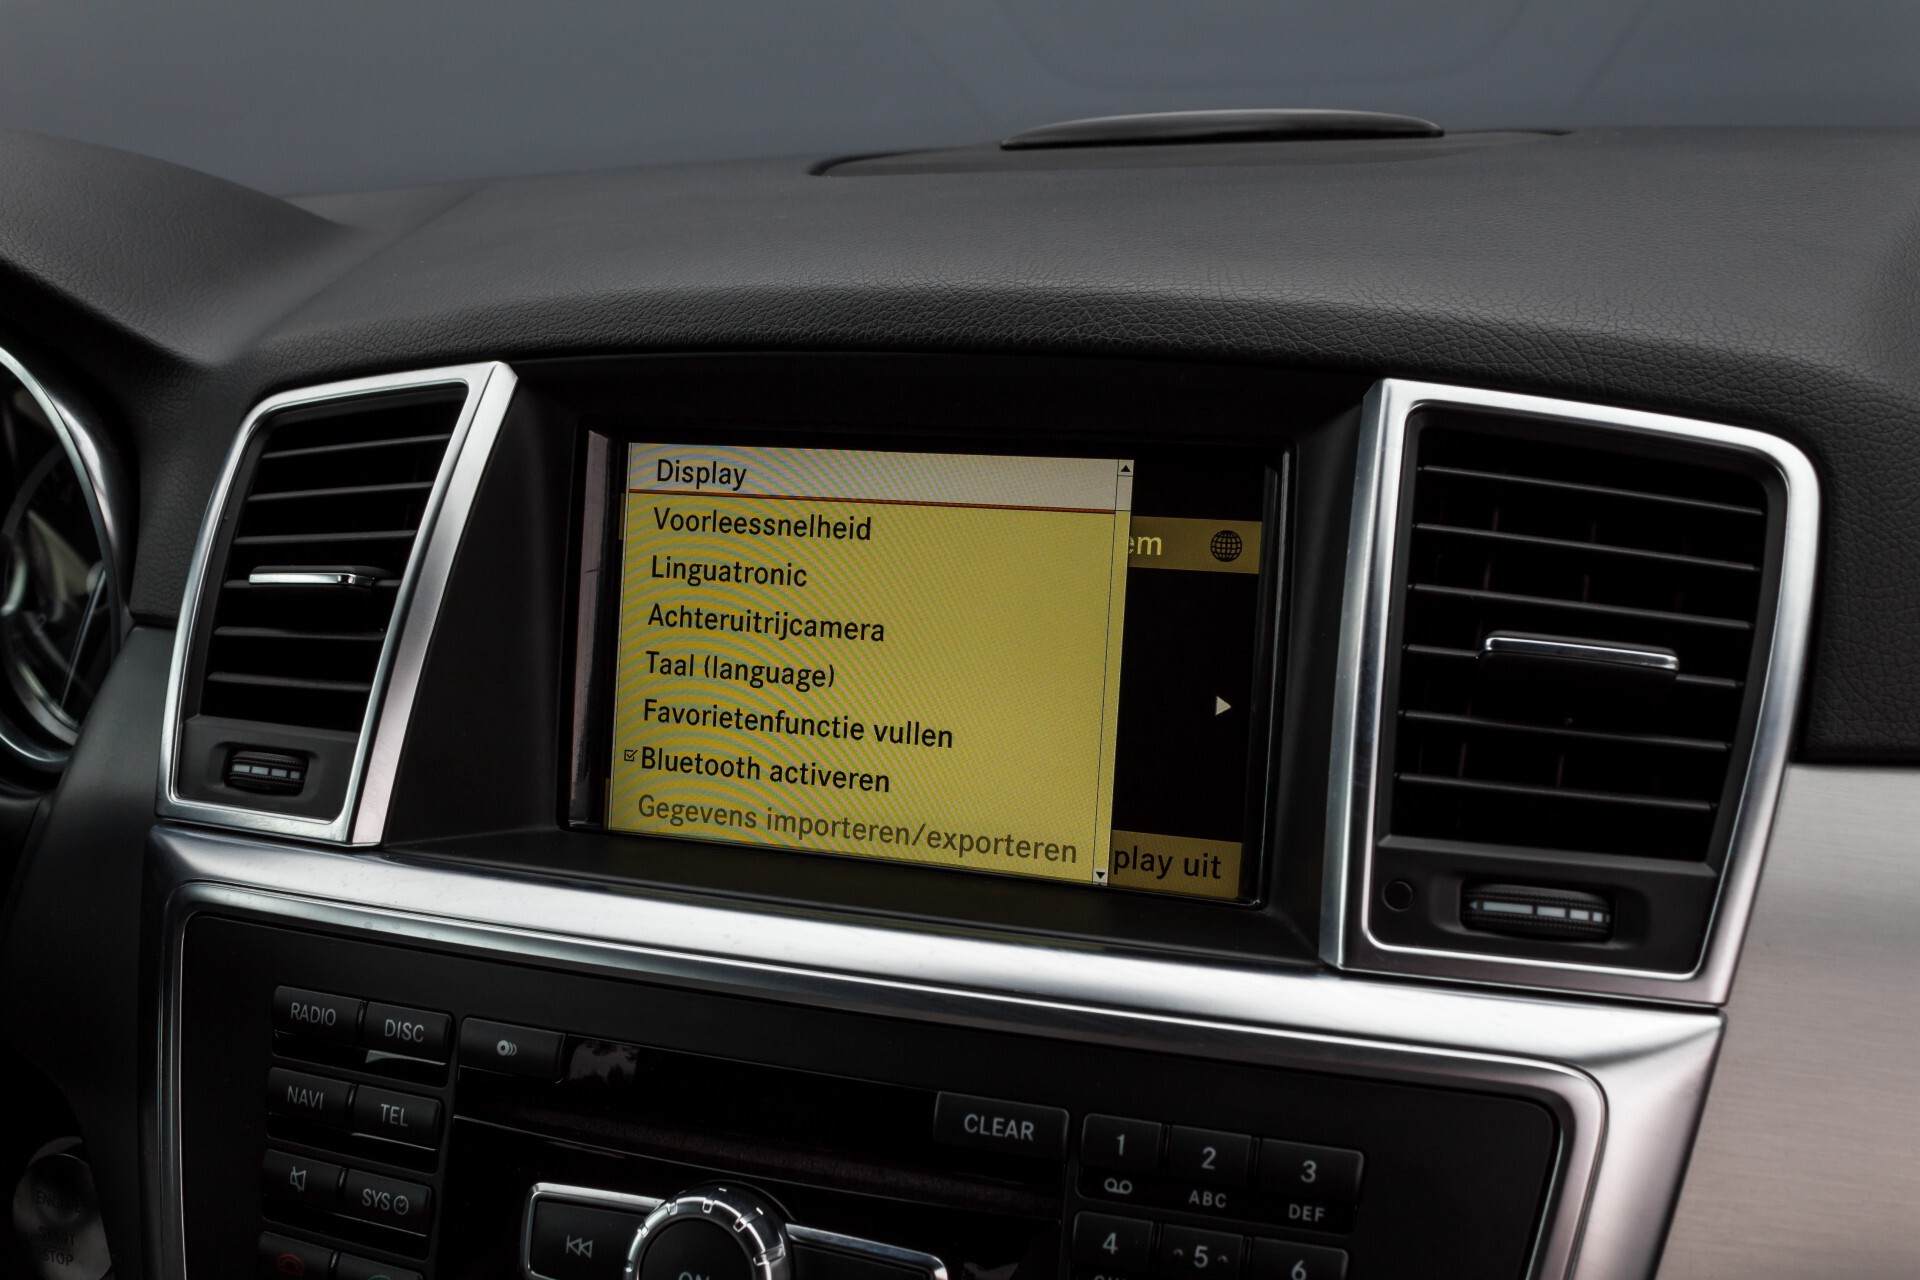 Mercedes-Benz M-Klasse 350 AMG 4-M Panorama/Keyless/Harman-Kardon/Camera/Trekhaak Aut7 Foto 23